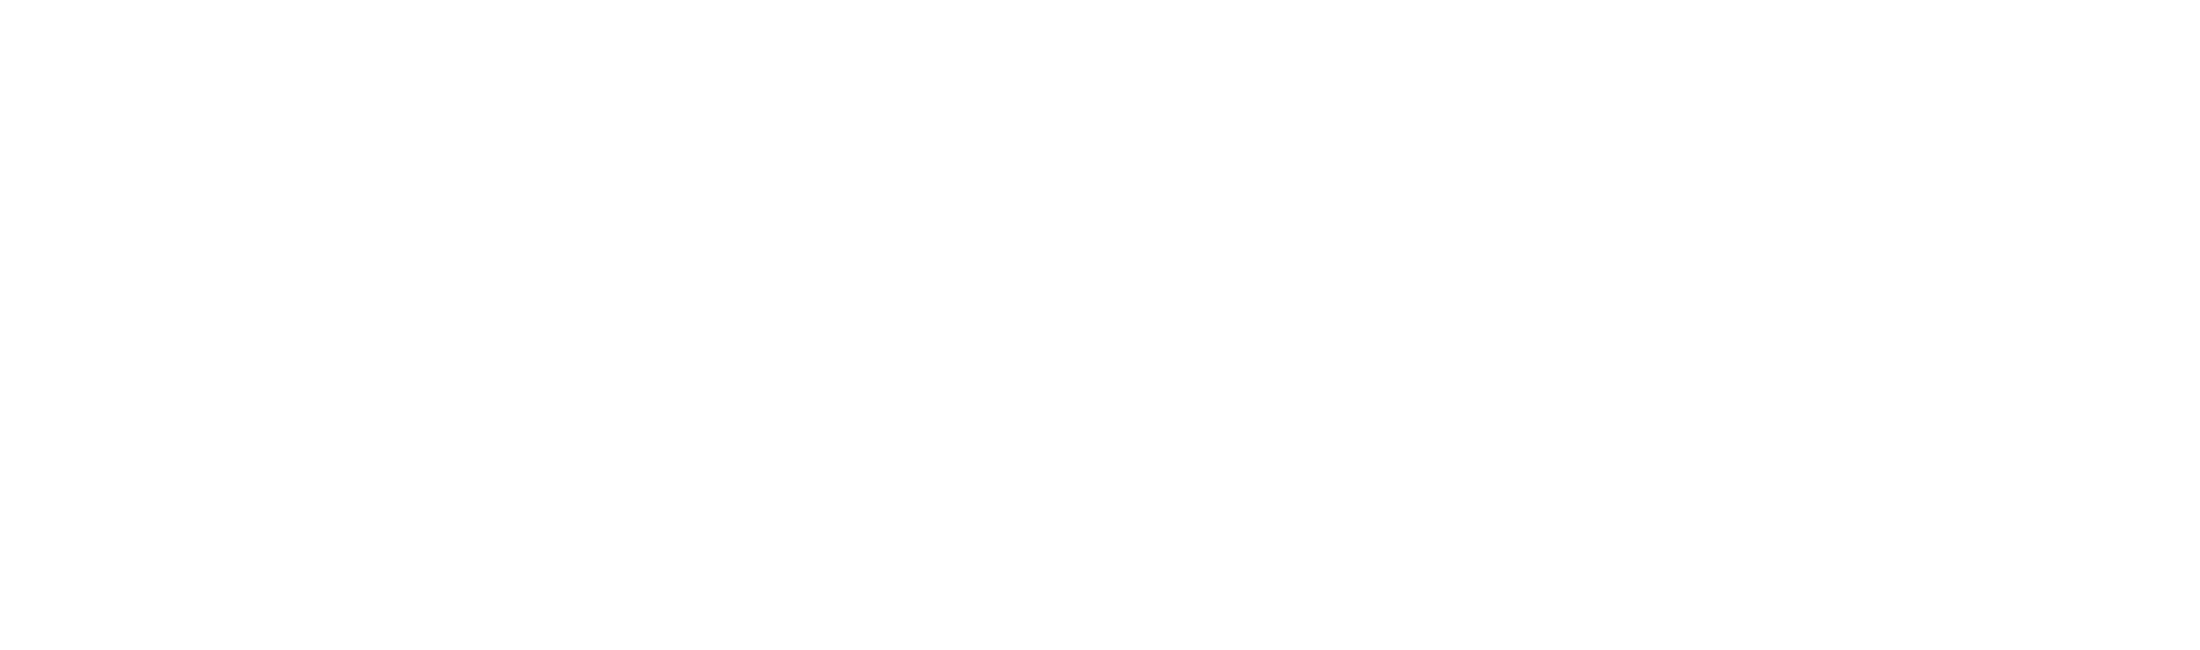 Outside Perspective Begins with an Altitude Adjustment